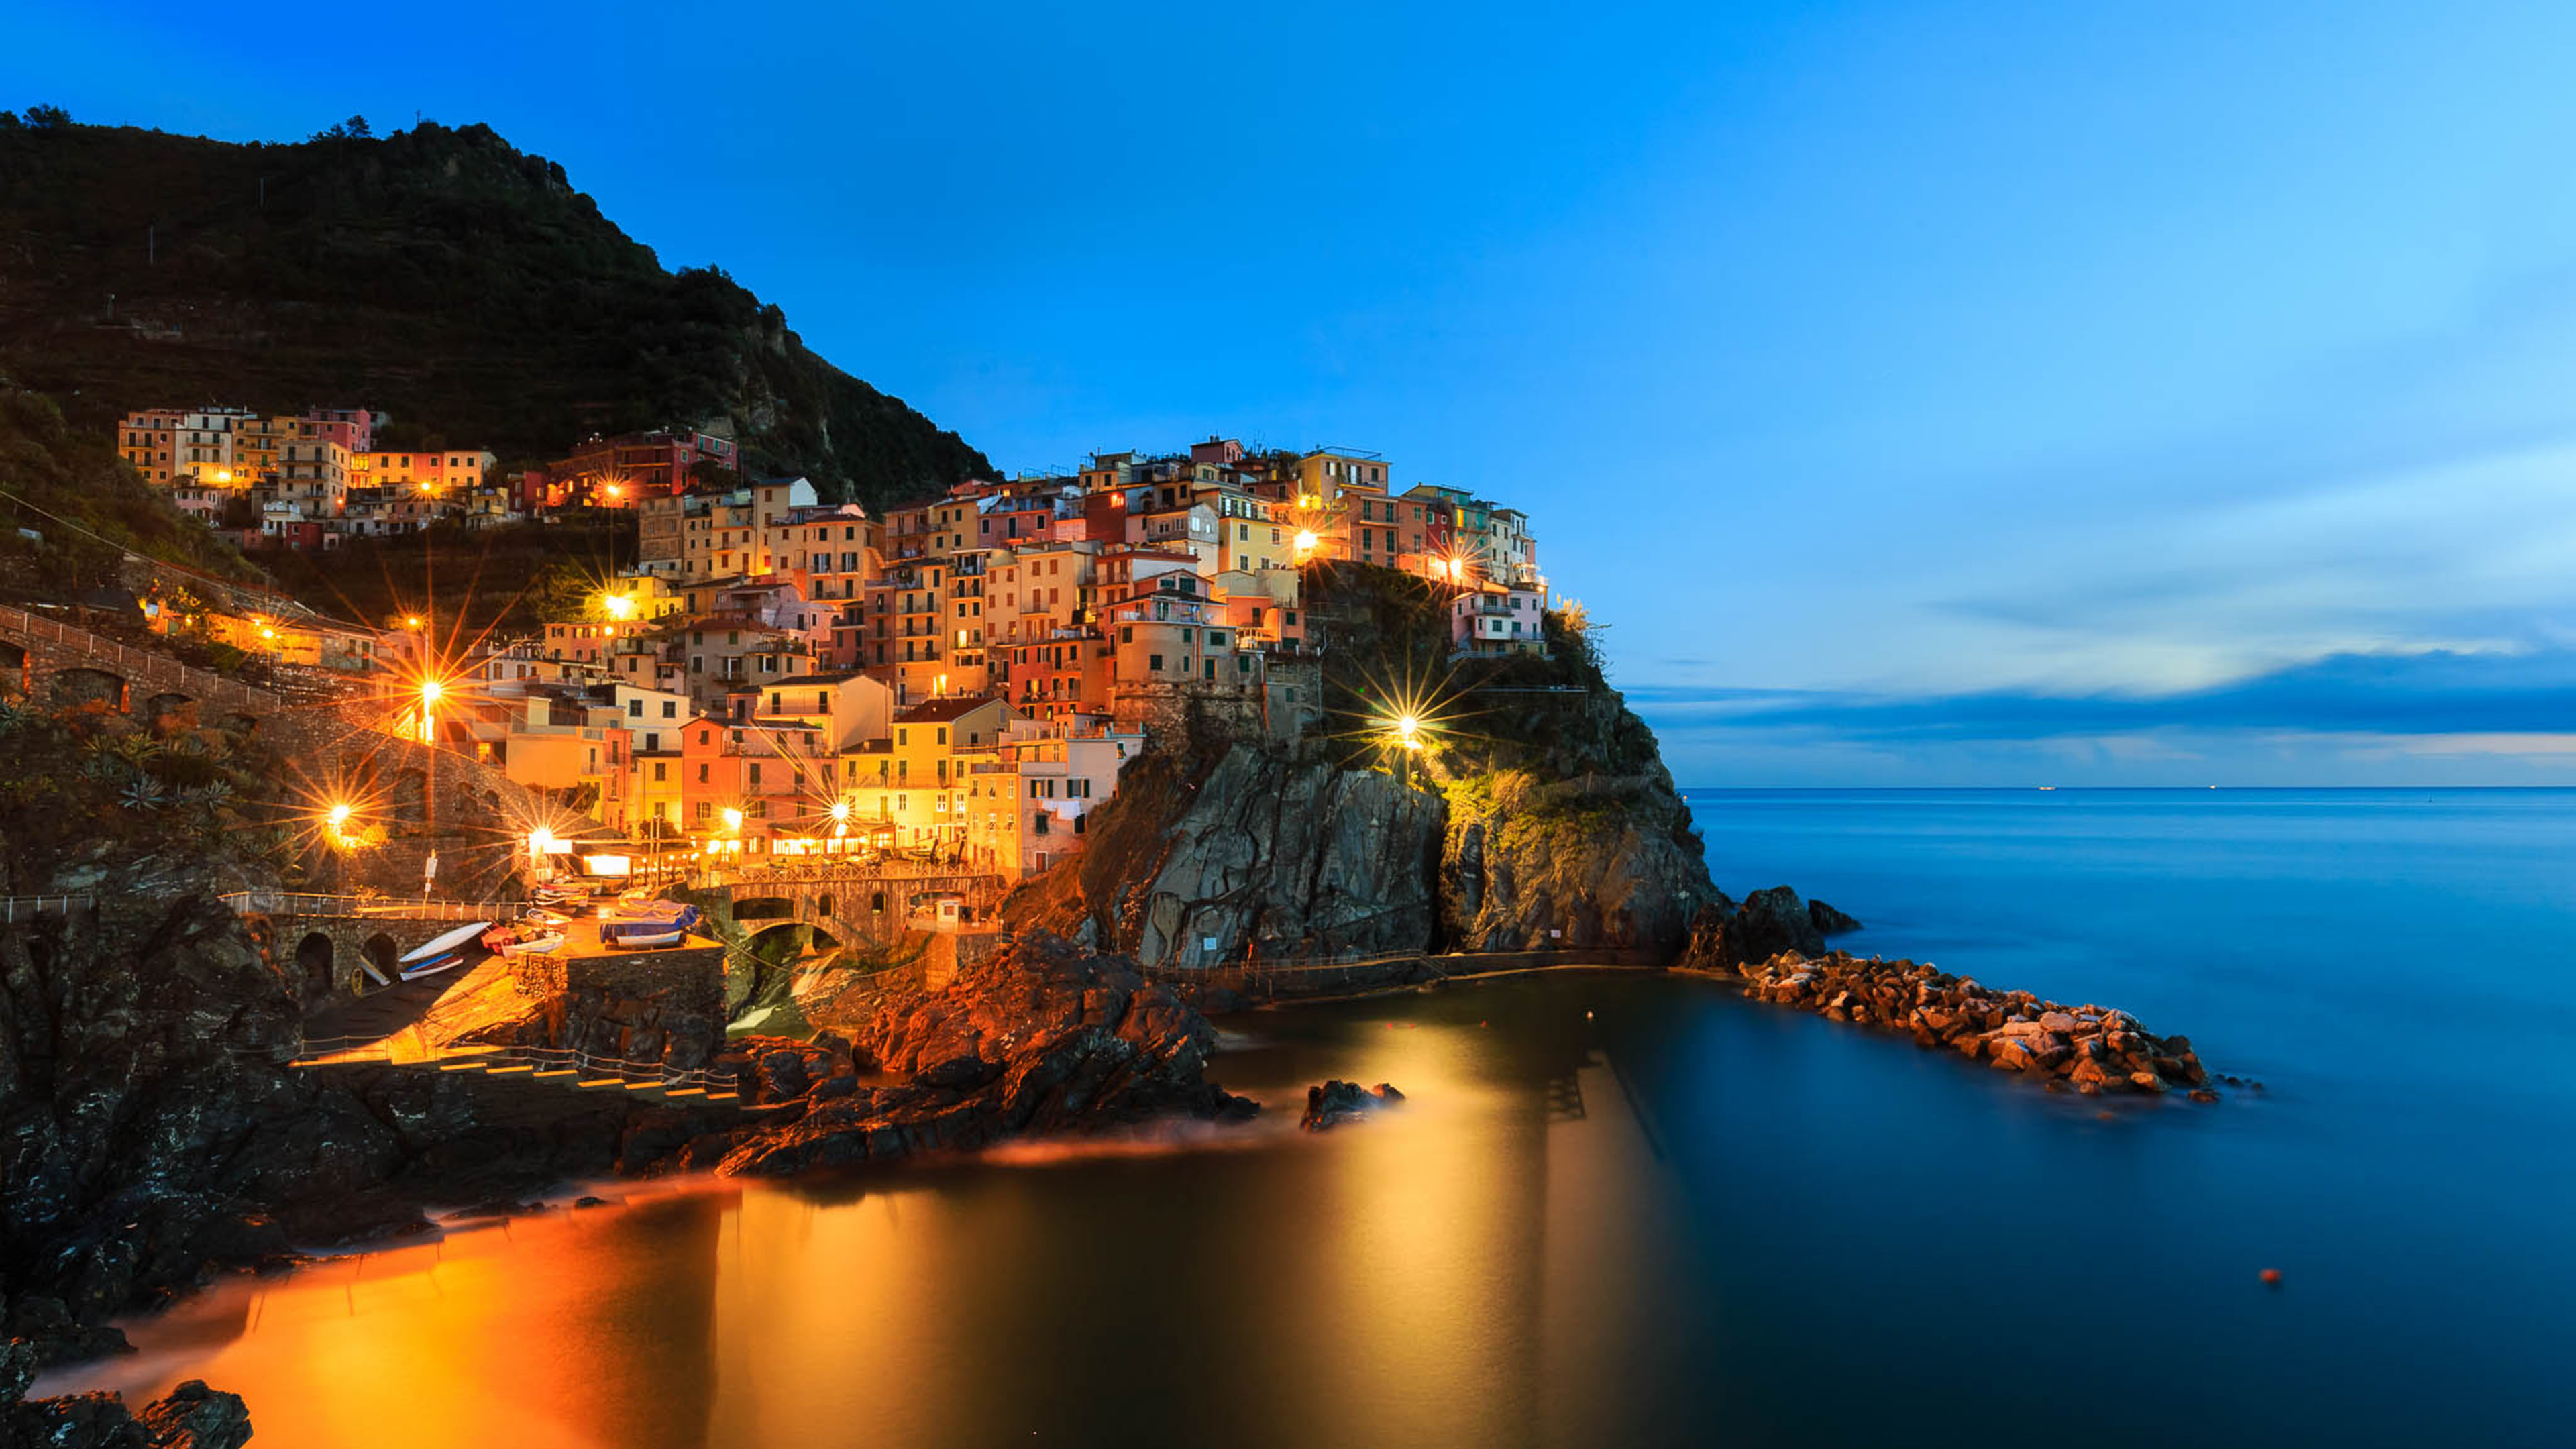 4K Wallpapers   Ultra HD Wallpapers Manarola Night 4K Wallpaper 3840x2160 340x220